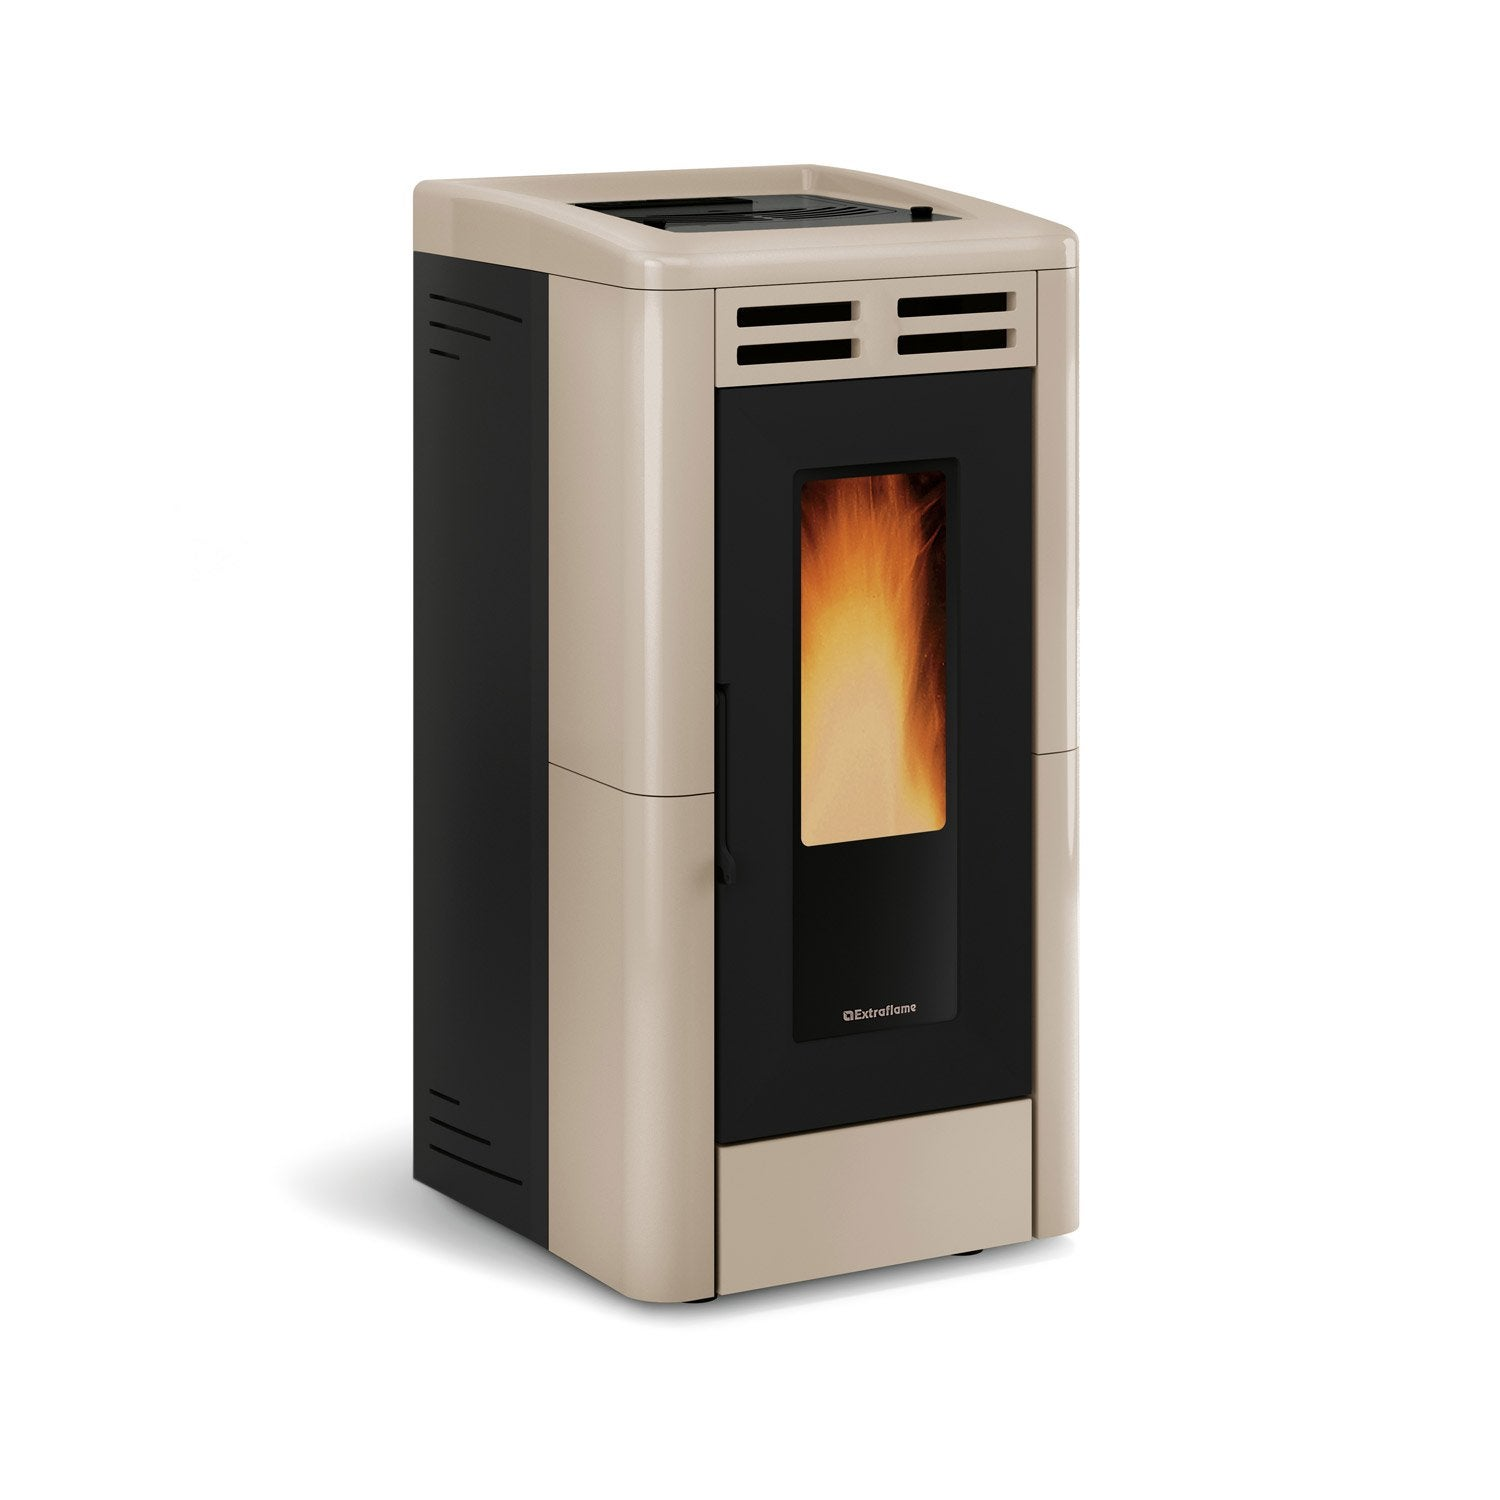 po le granul s extraflame anastasia plus tortora 12 kw leroy merlin. Black Bedroom Furniture Sets. Home Design Ideas